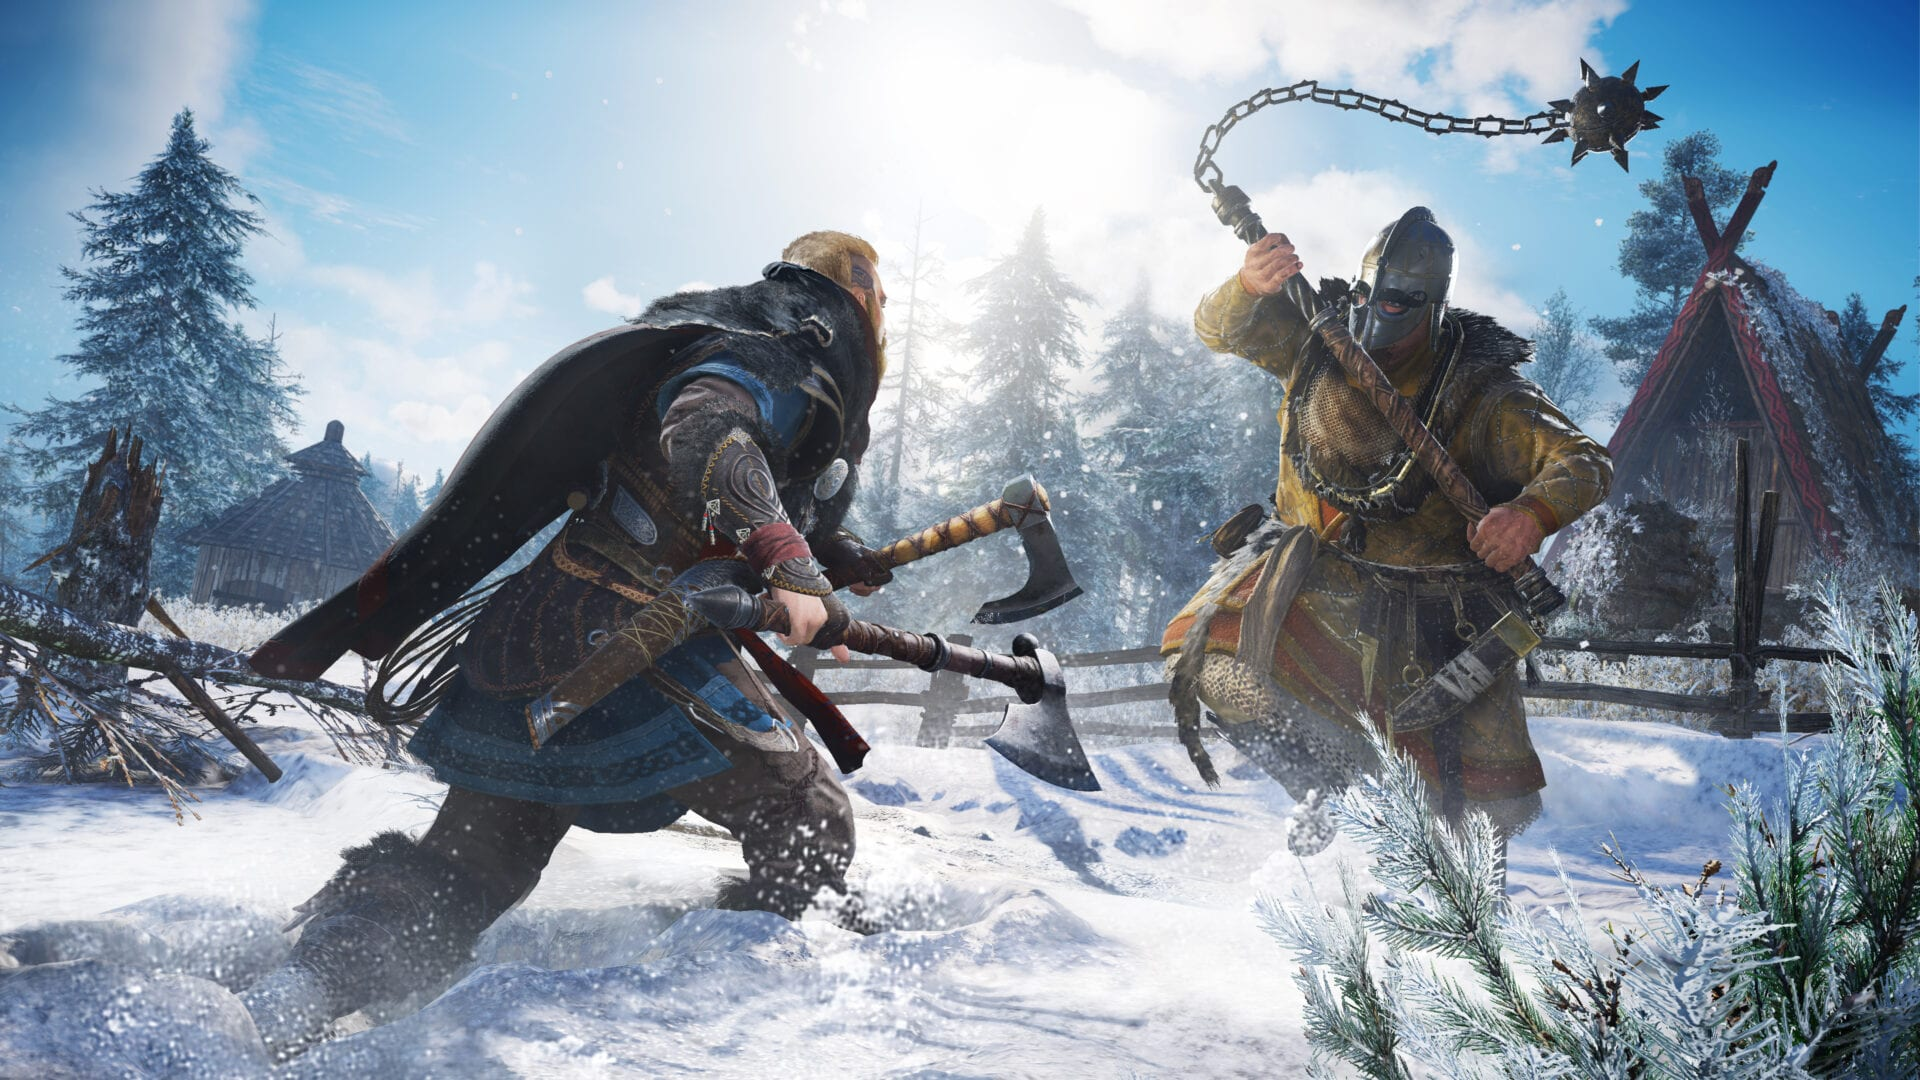 assassin's creed valhalla, how to get to vinland